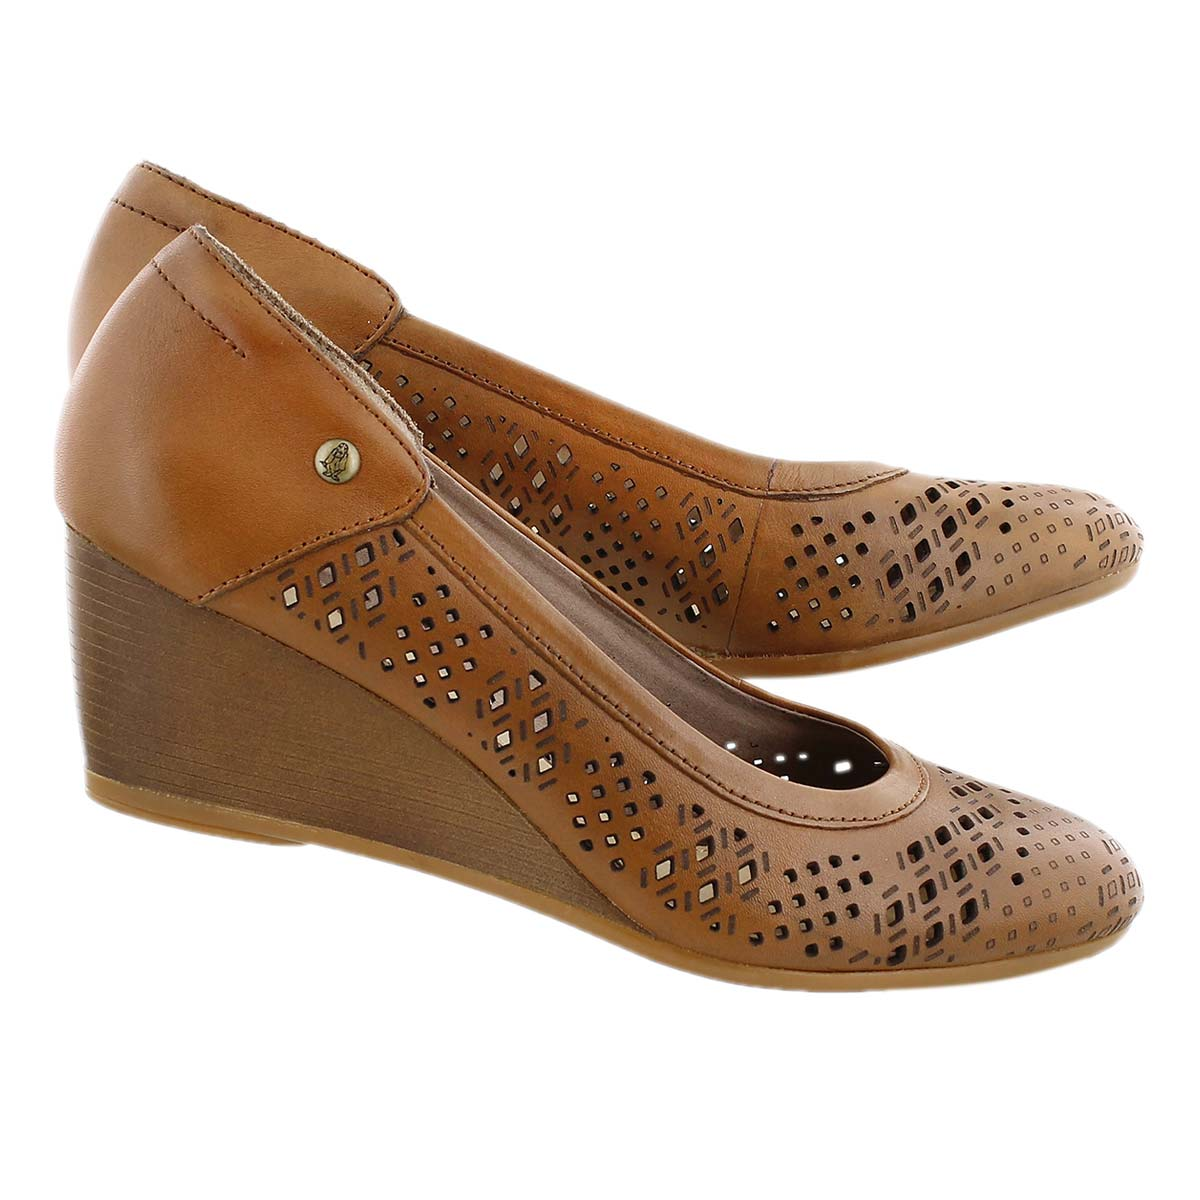 Lds Mindon Rhea tan perforated wedge